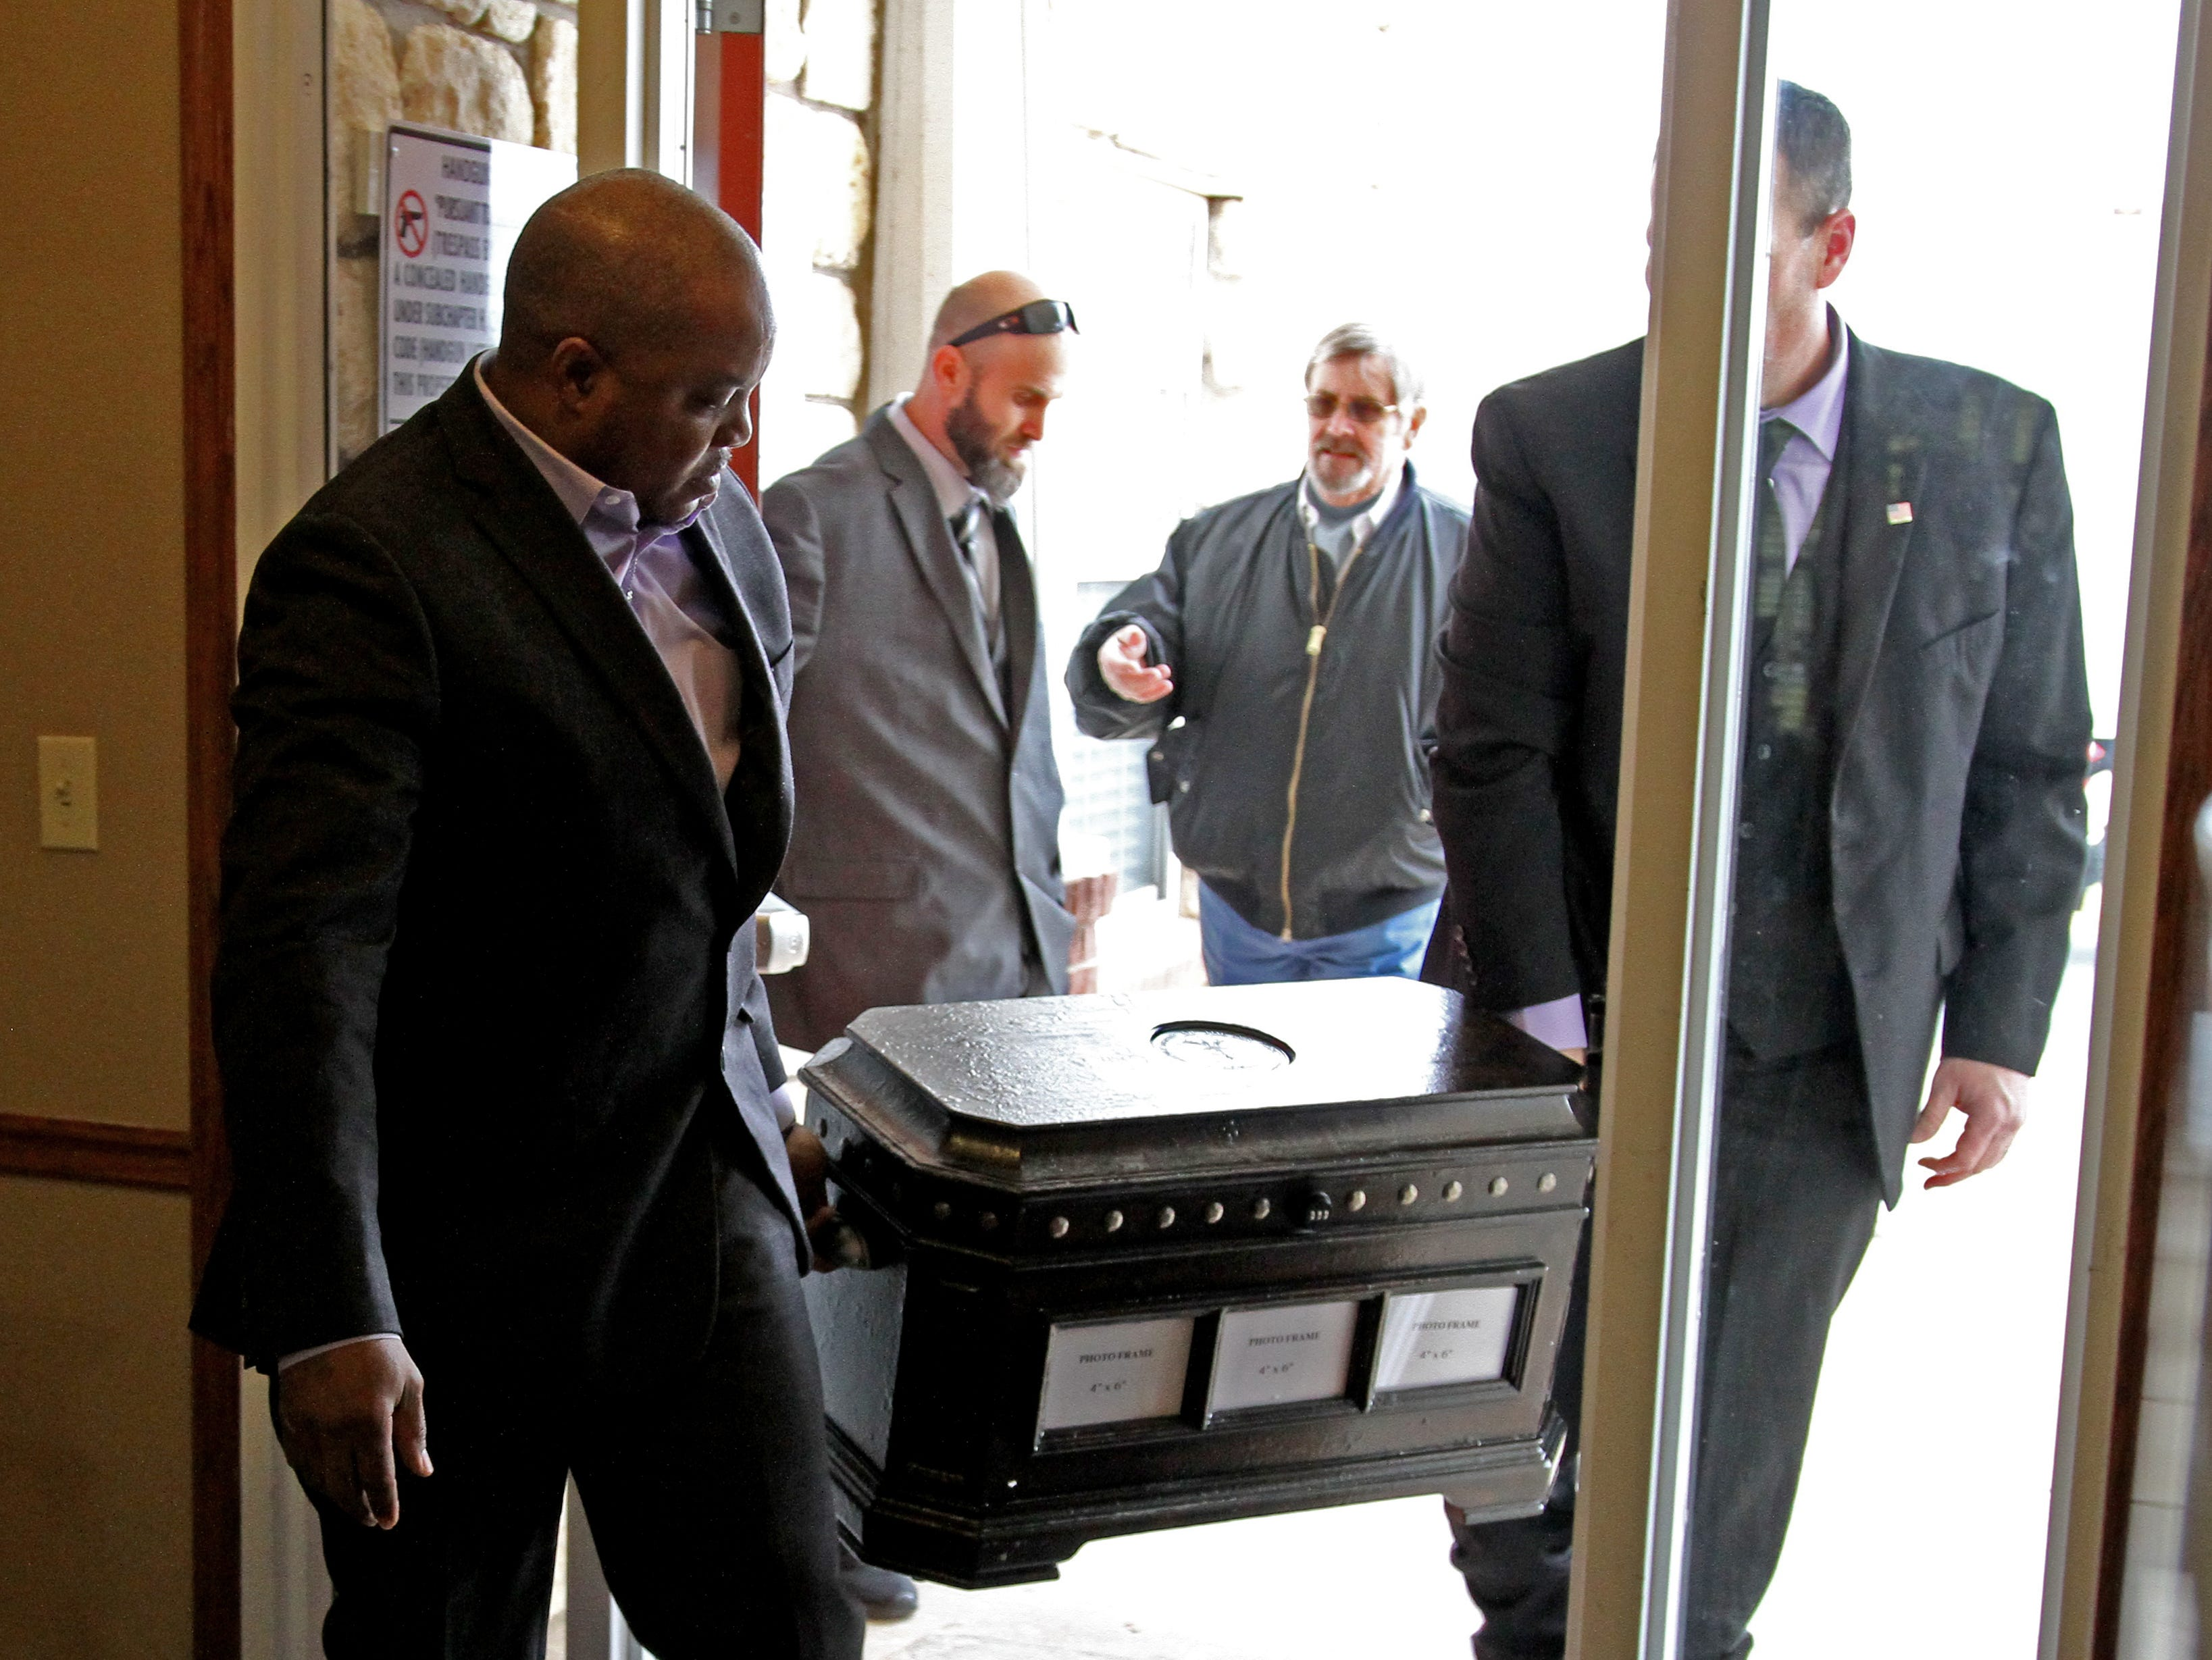 A life chest is brought in for WWII veteran Joe Cuba's 100th birthday Saturday, March 2, 2019, at Brookdale Midwestern.